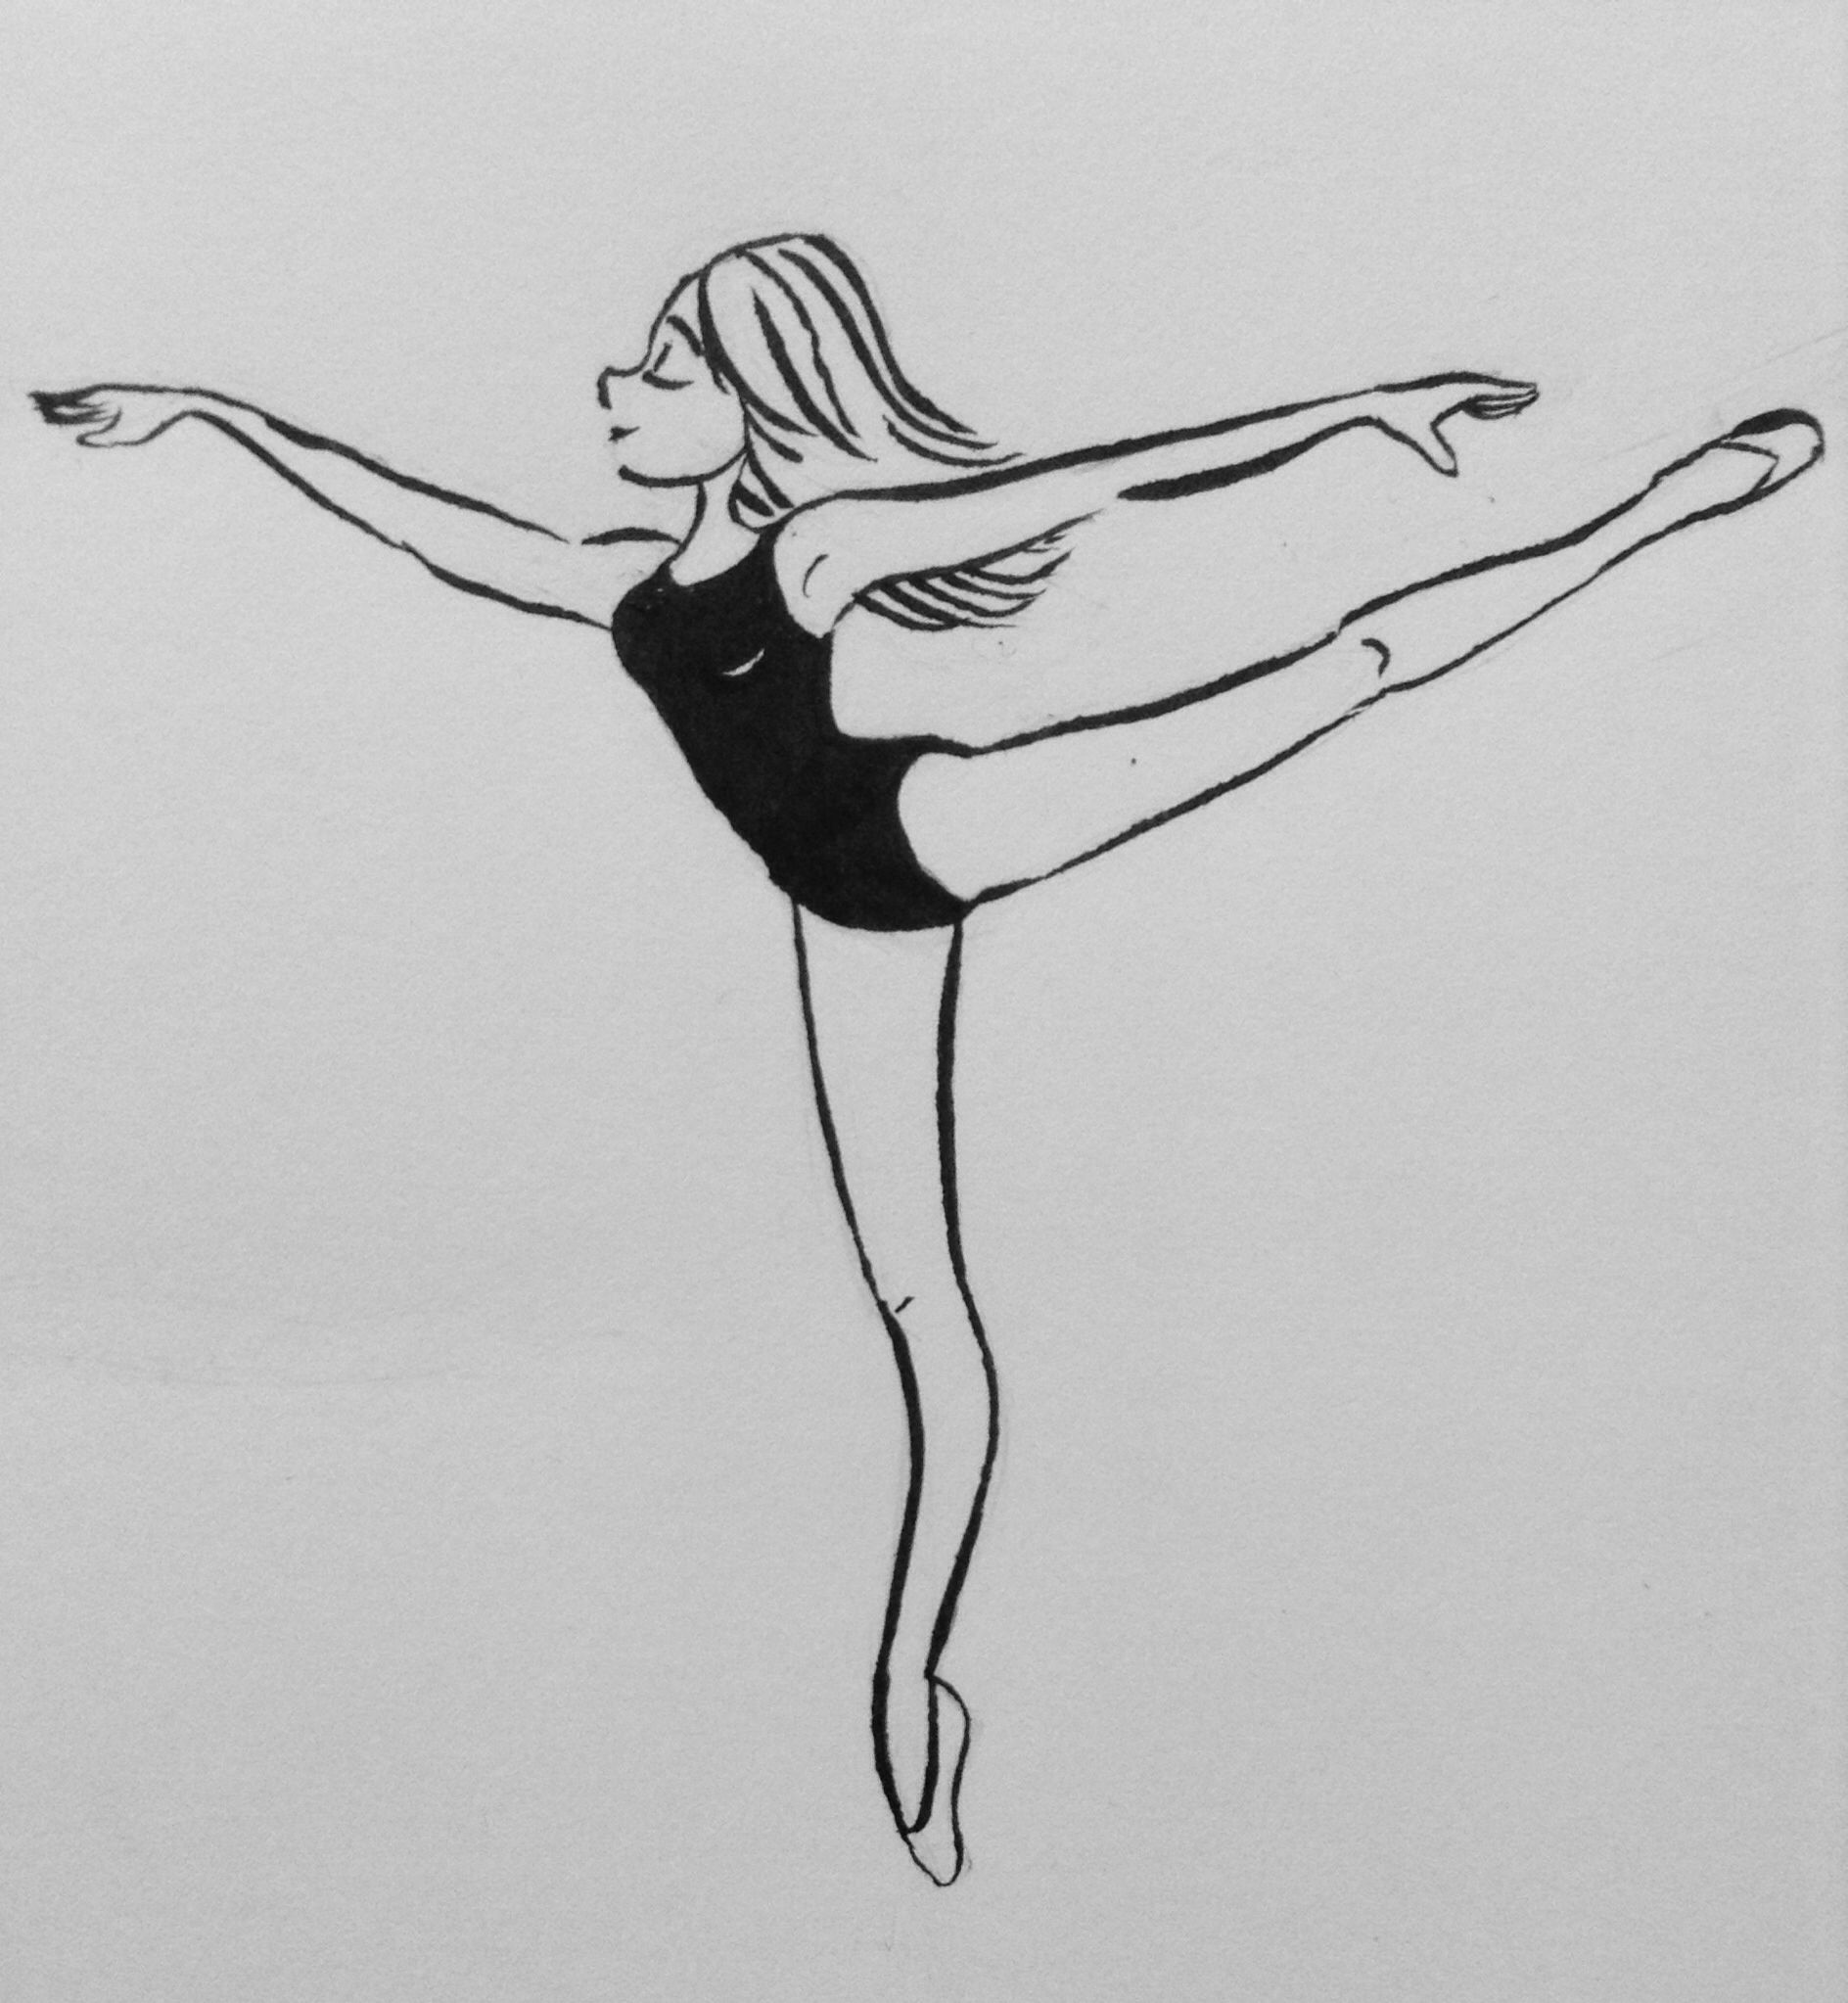 how to draw a person doing gymnastics drawing of the gymnastics beam illustrations royalty free a doing how to draw person gymnastics